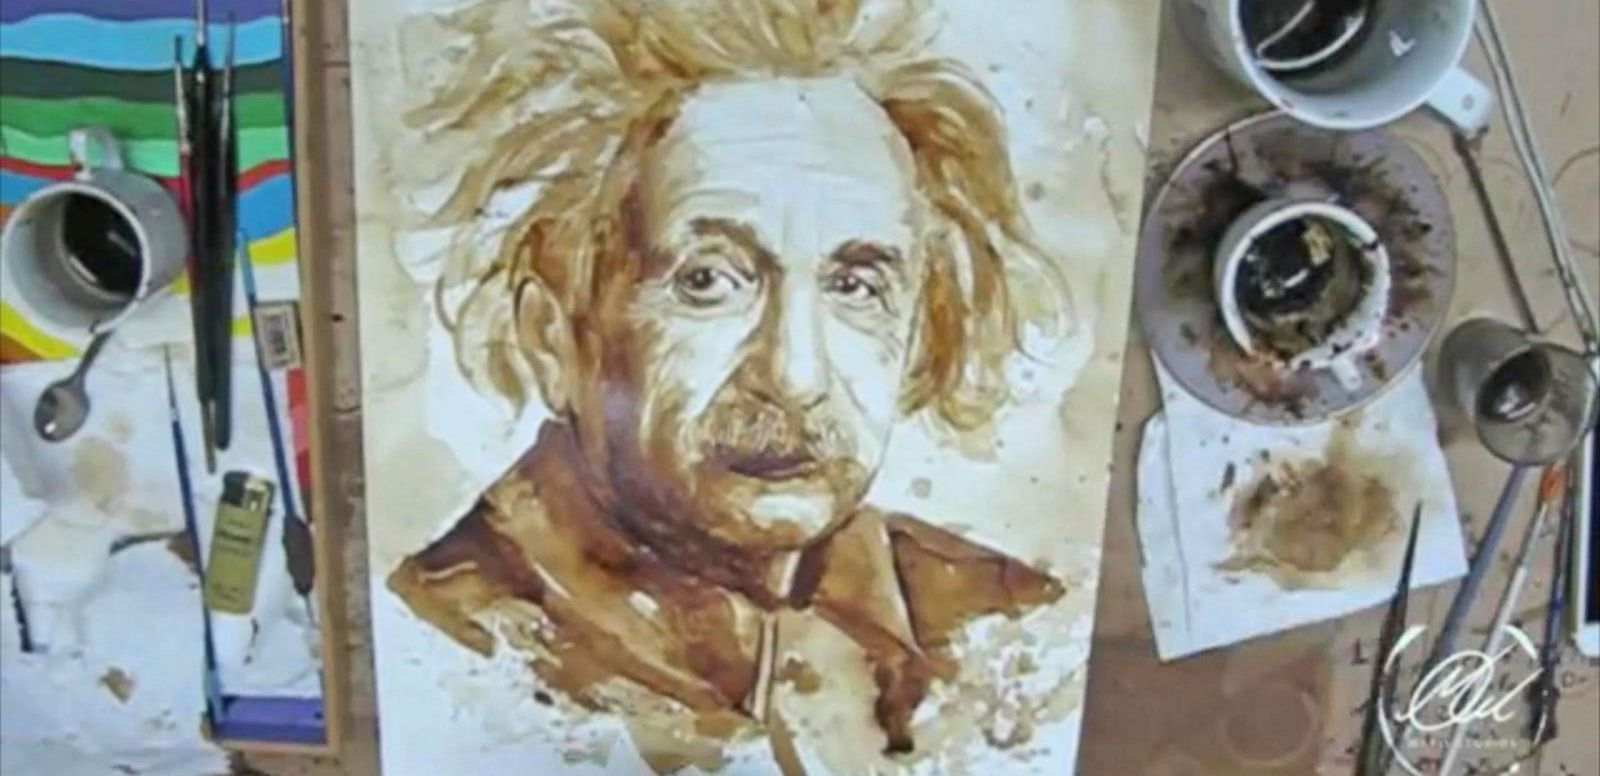 VIDEO: Artist Creates a 'Stir' With Coffee Paintings